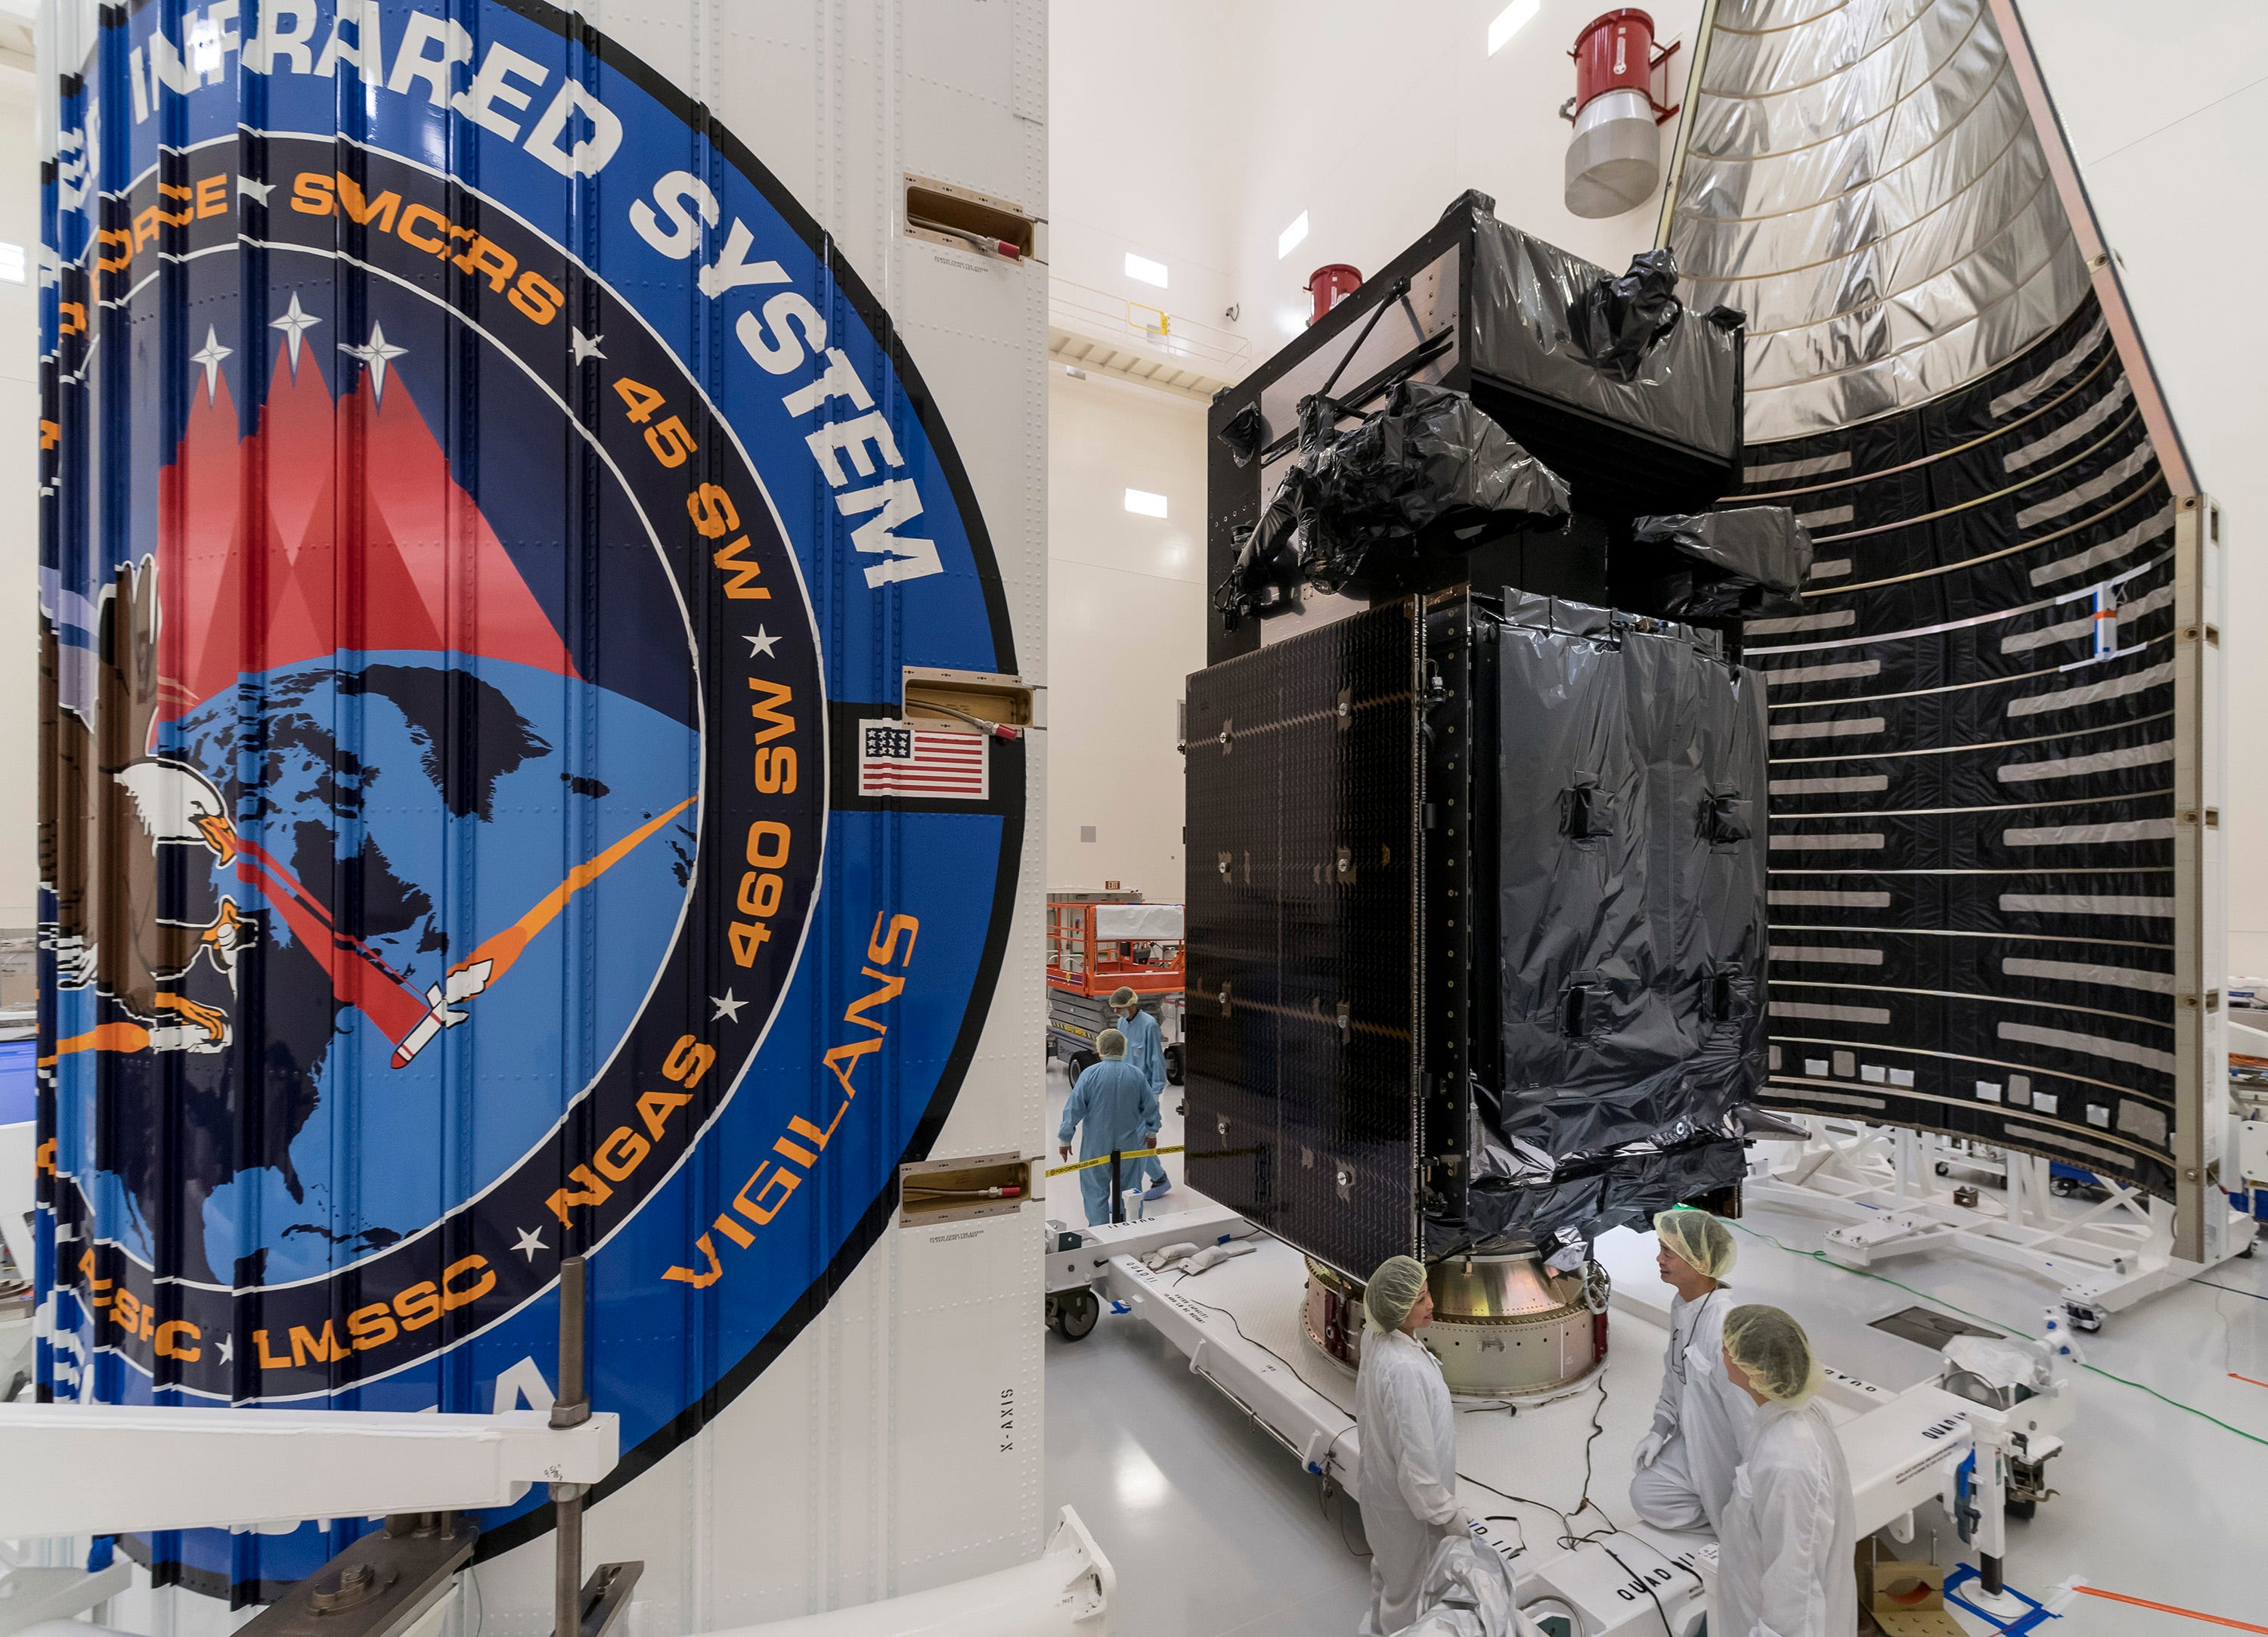 636511747888936219-sbirs-geo4-encaps-180110-F-ZZ999-102 Missile warning satellite moving to Atlas V rocket for launch next week